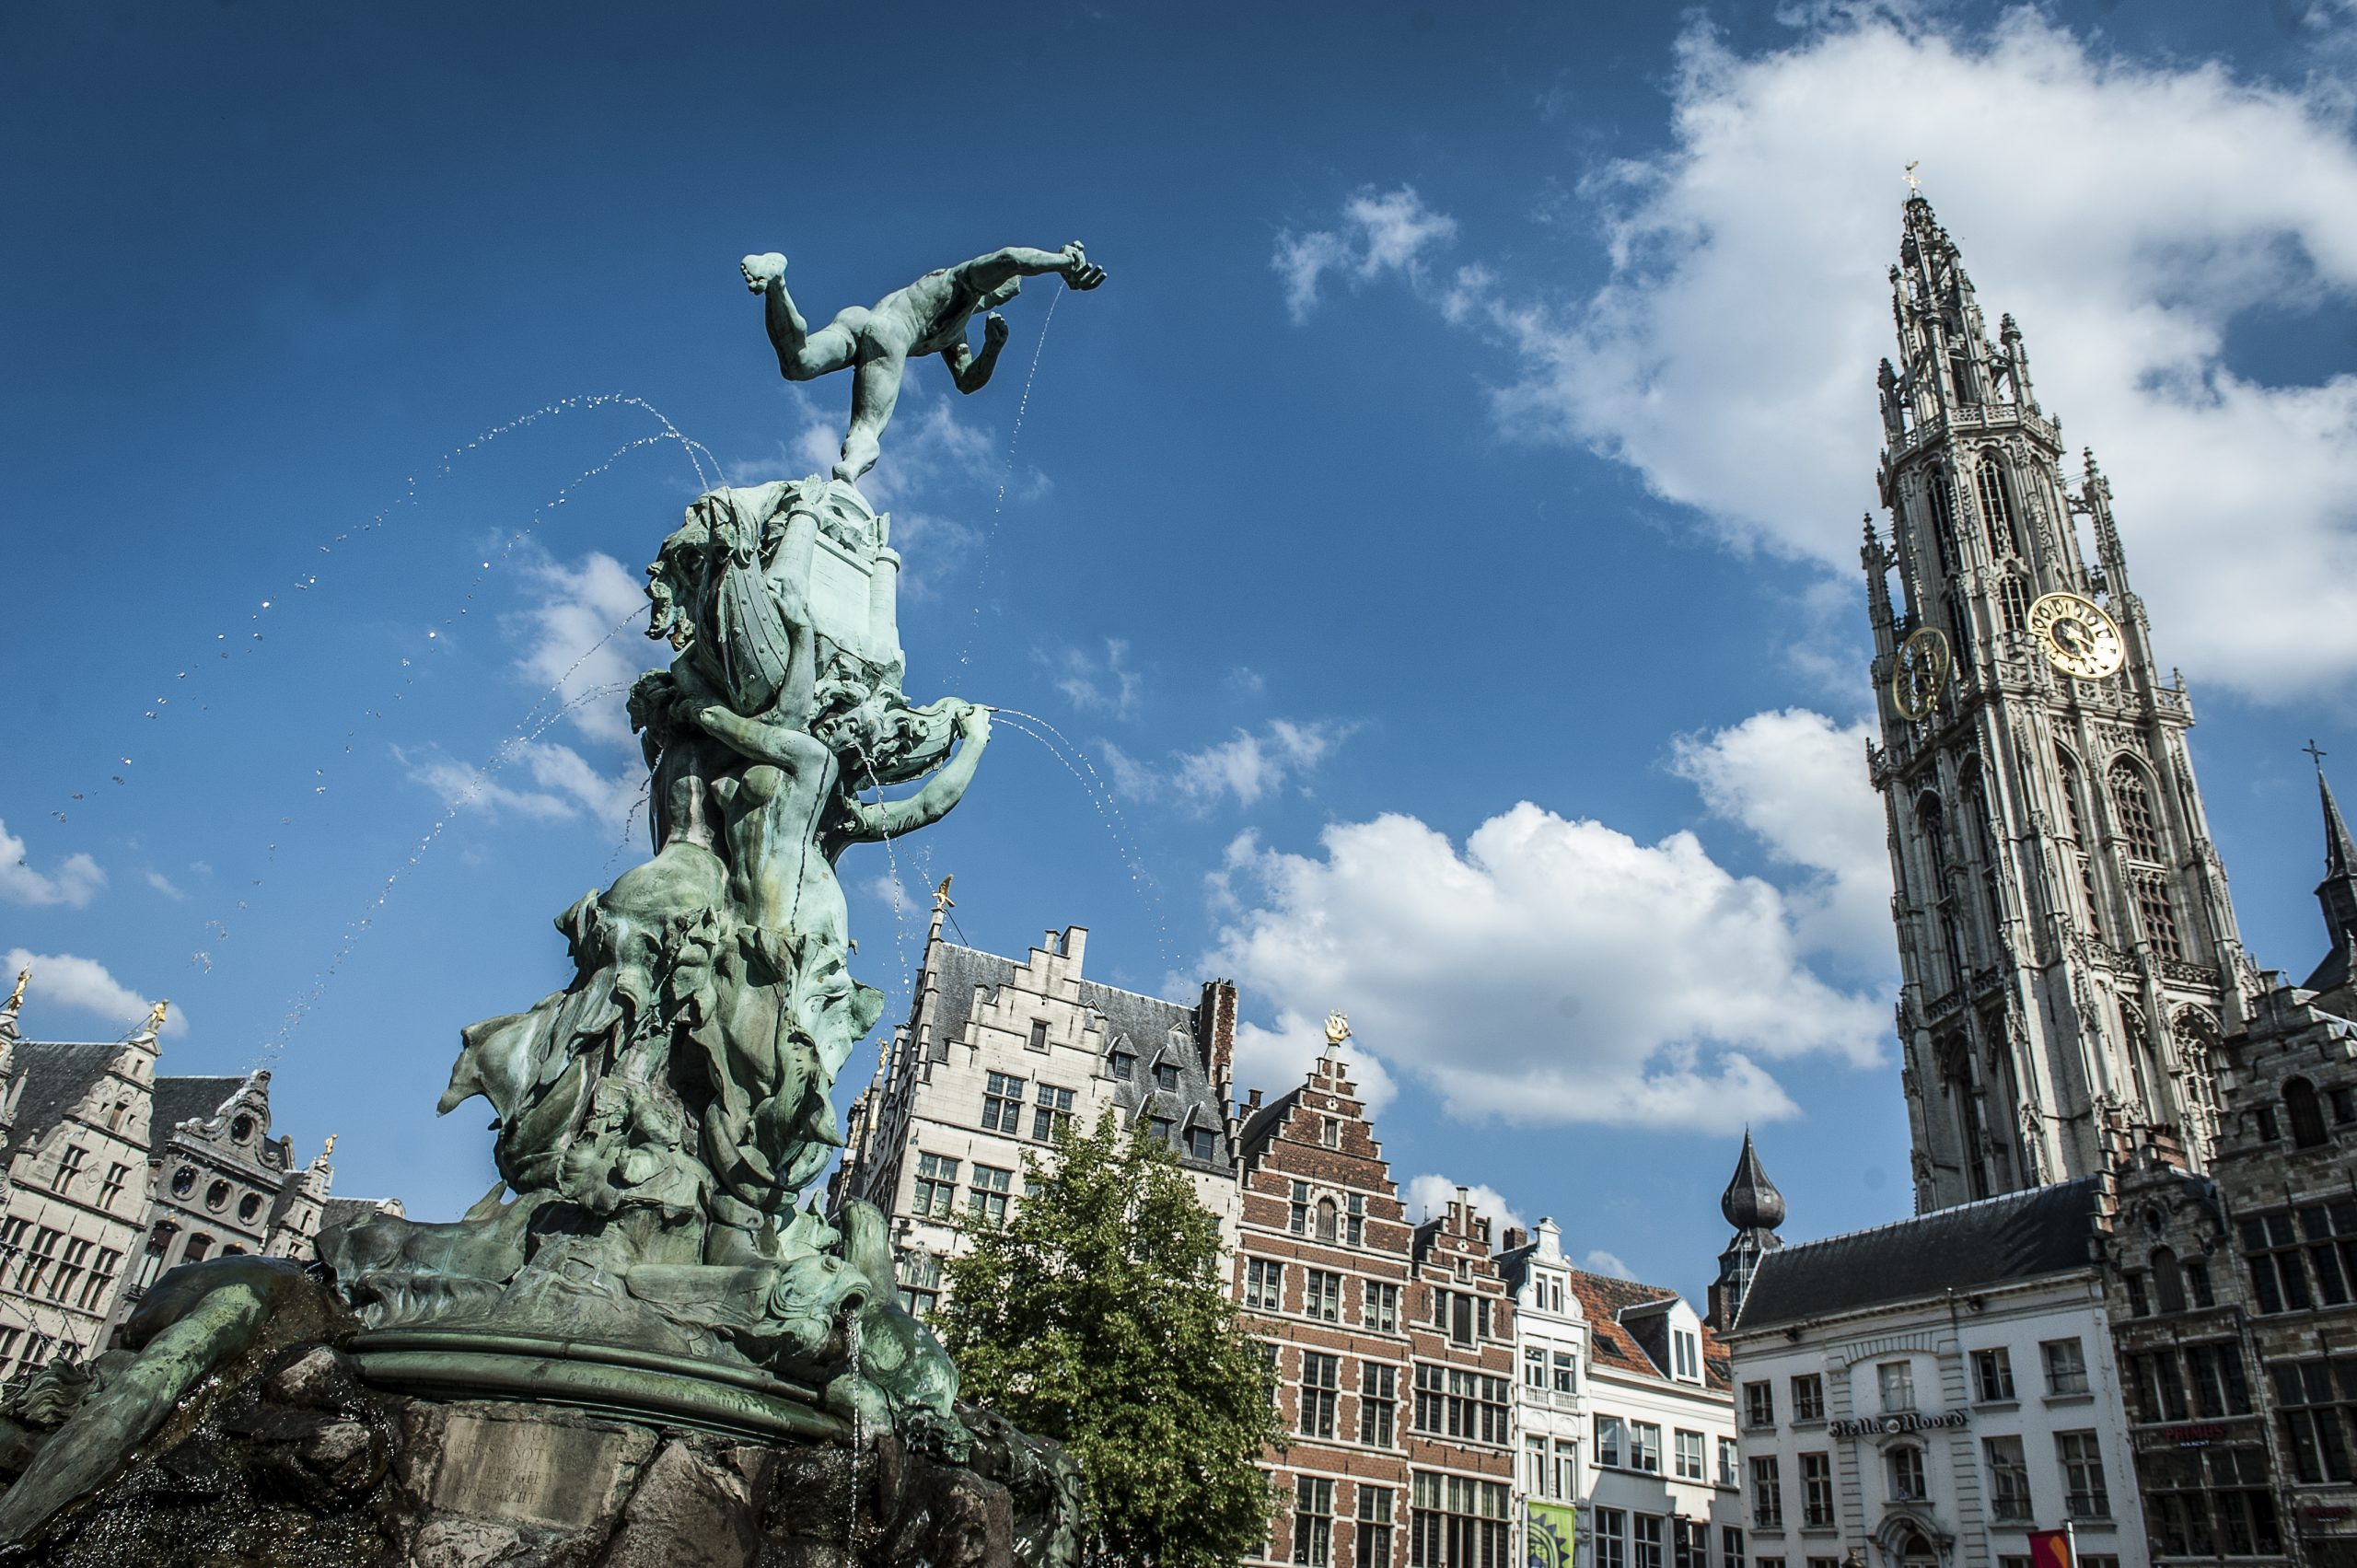 On a World Trip in Antwerp, Belgium